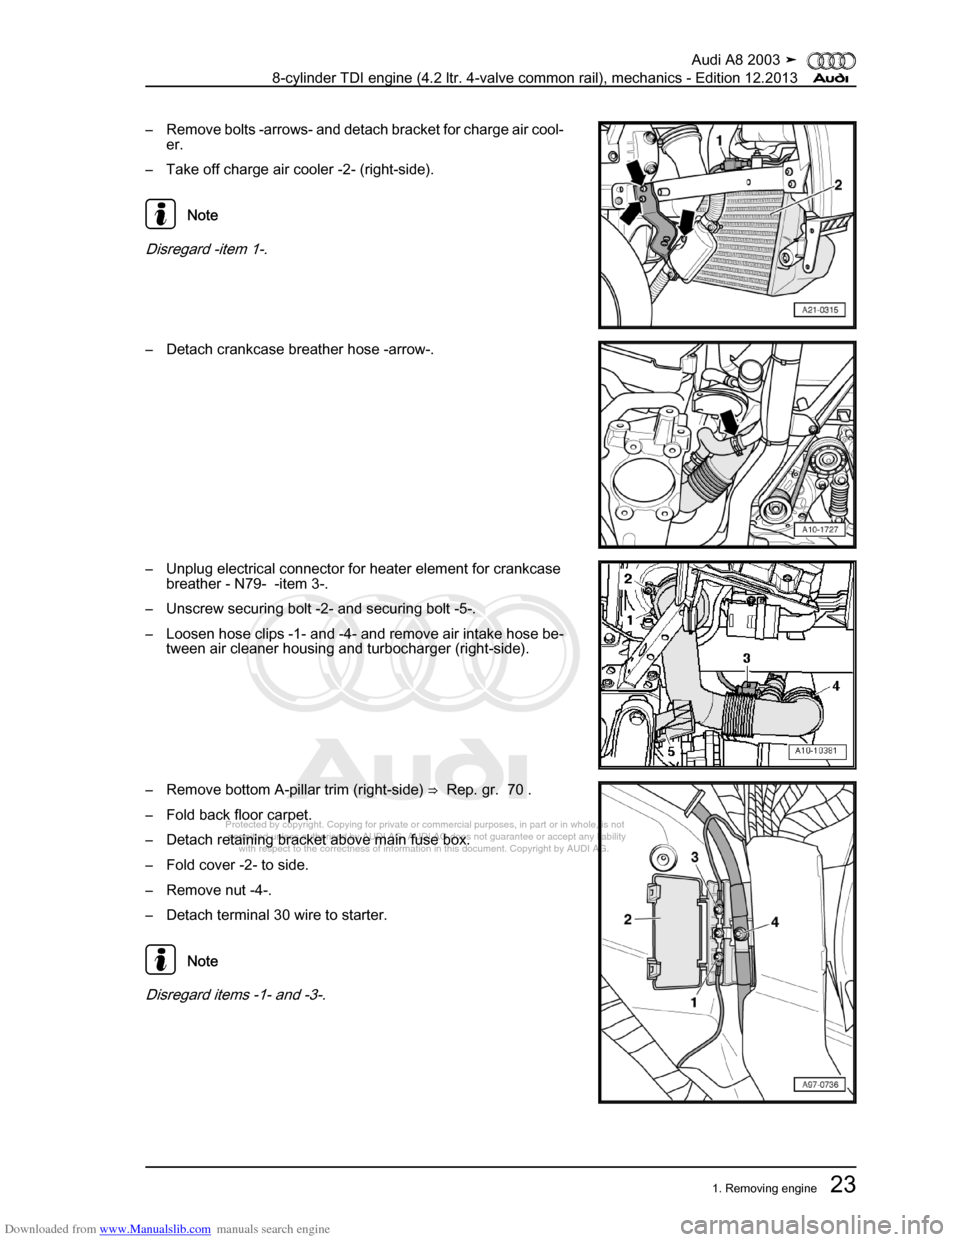 audi d2 engine diagram  audi  auto wiring diagram